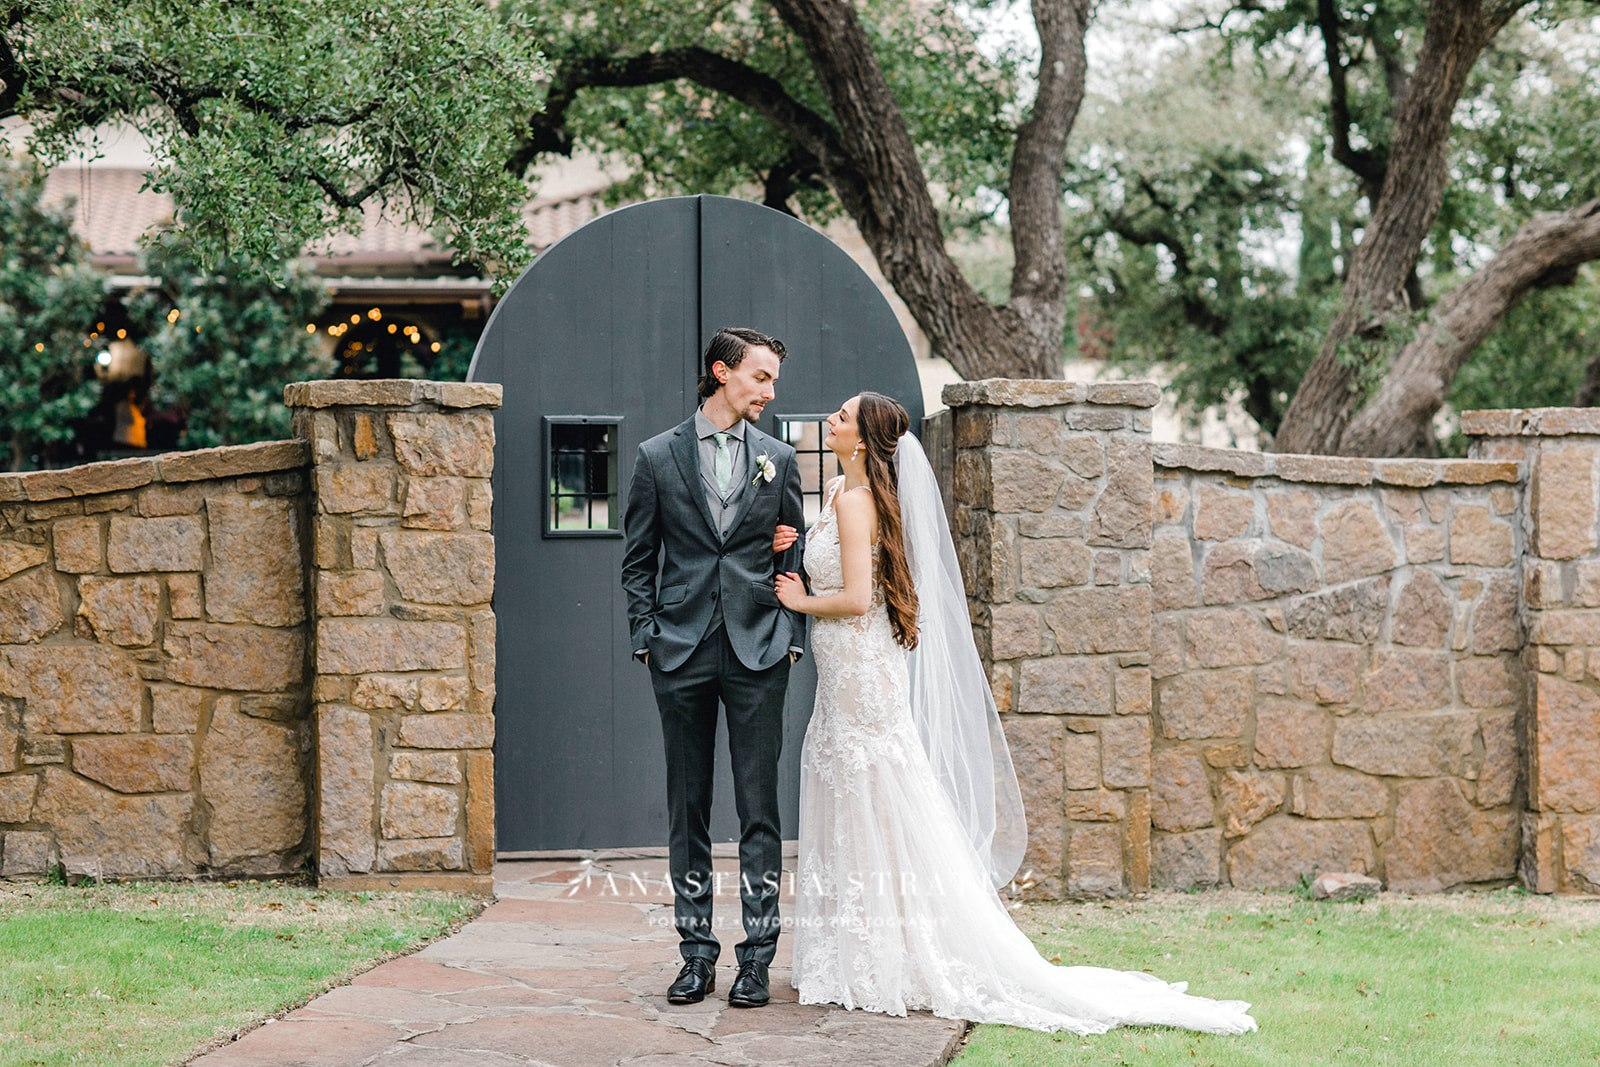 bride and groom at their Texas wedding